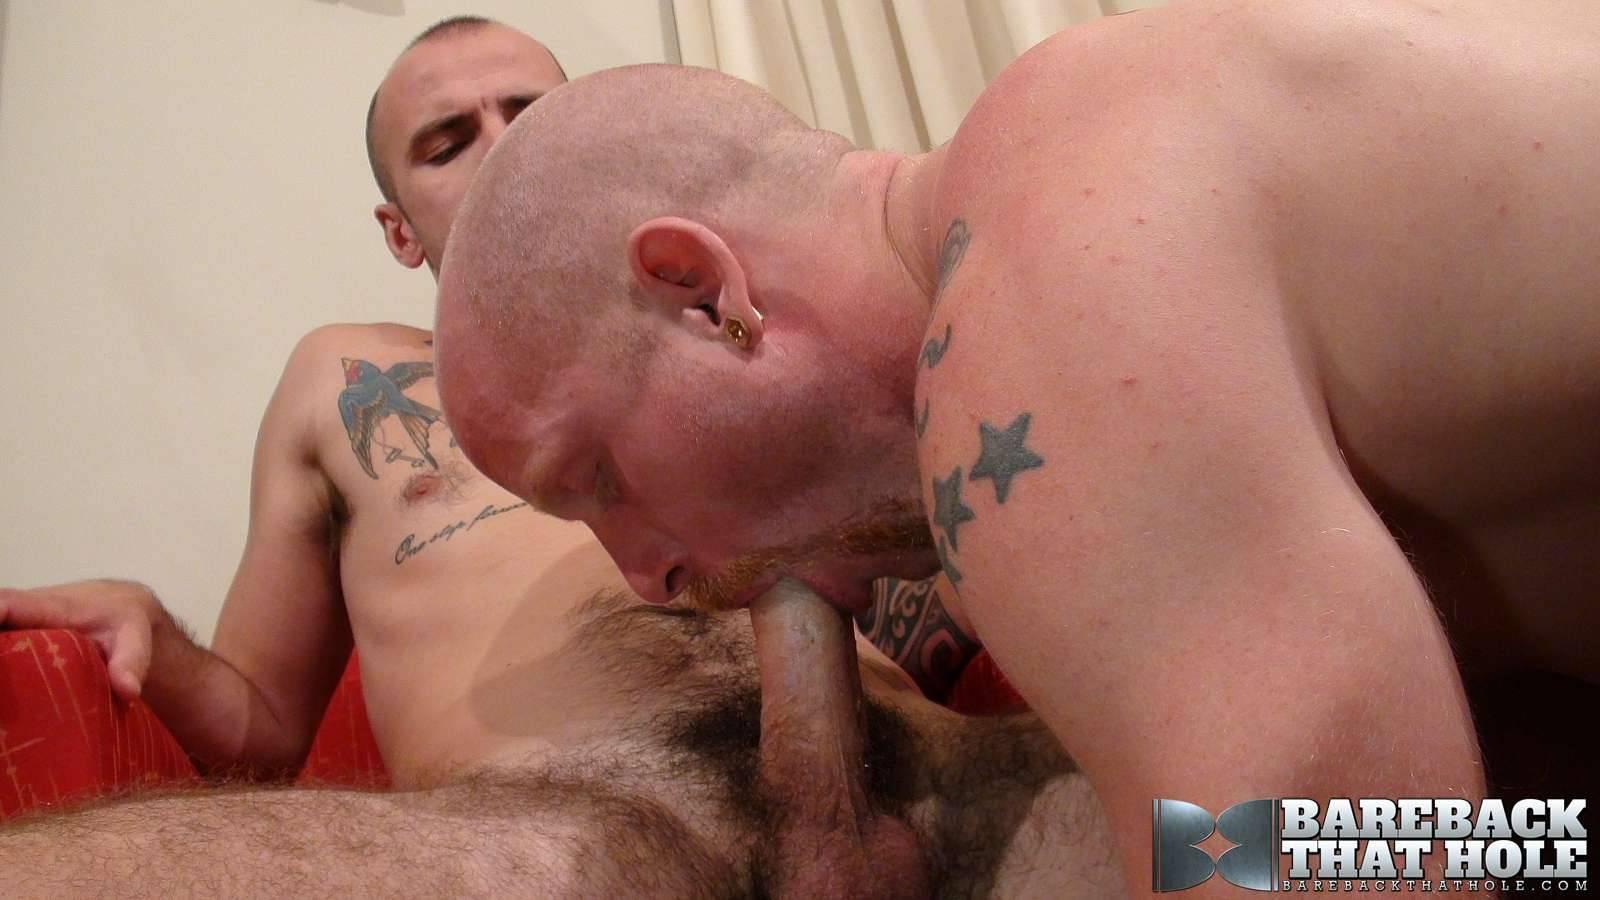 Bareback-That-Hole-Cam-Christou-and-Brock-Rustin-Redhead-Ginger-Gets-Barebacked-By-A-Big-Cock-Amateur-Gay-Porn-02.jpg